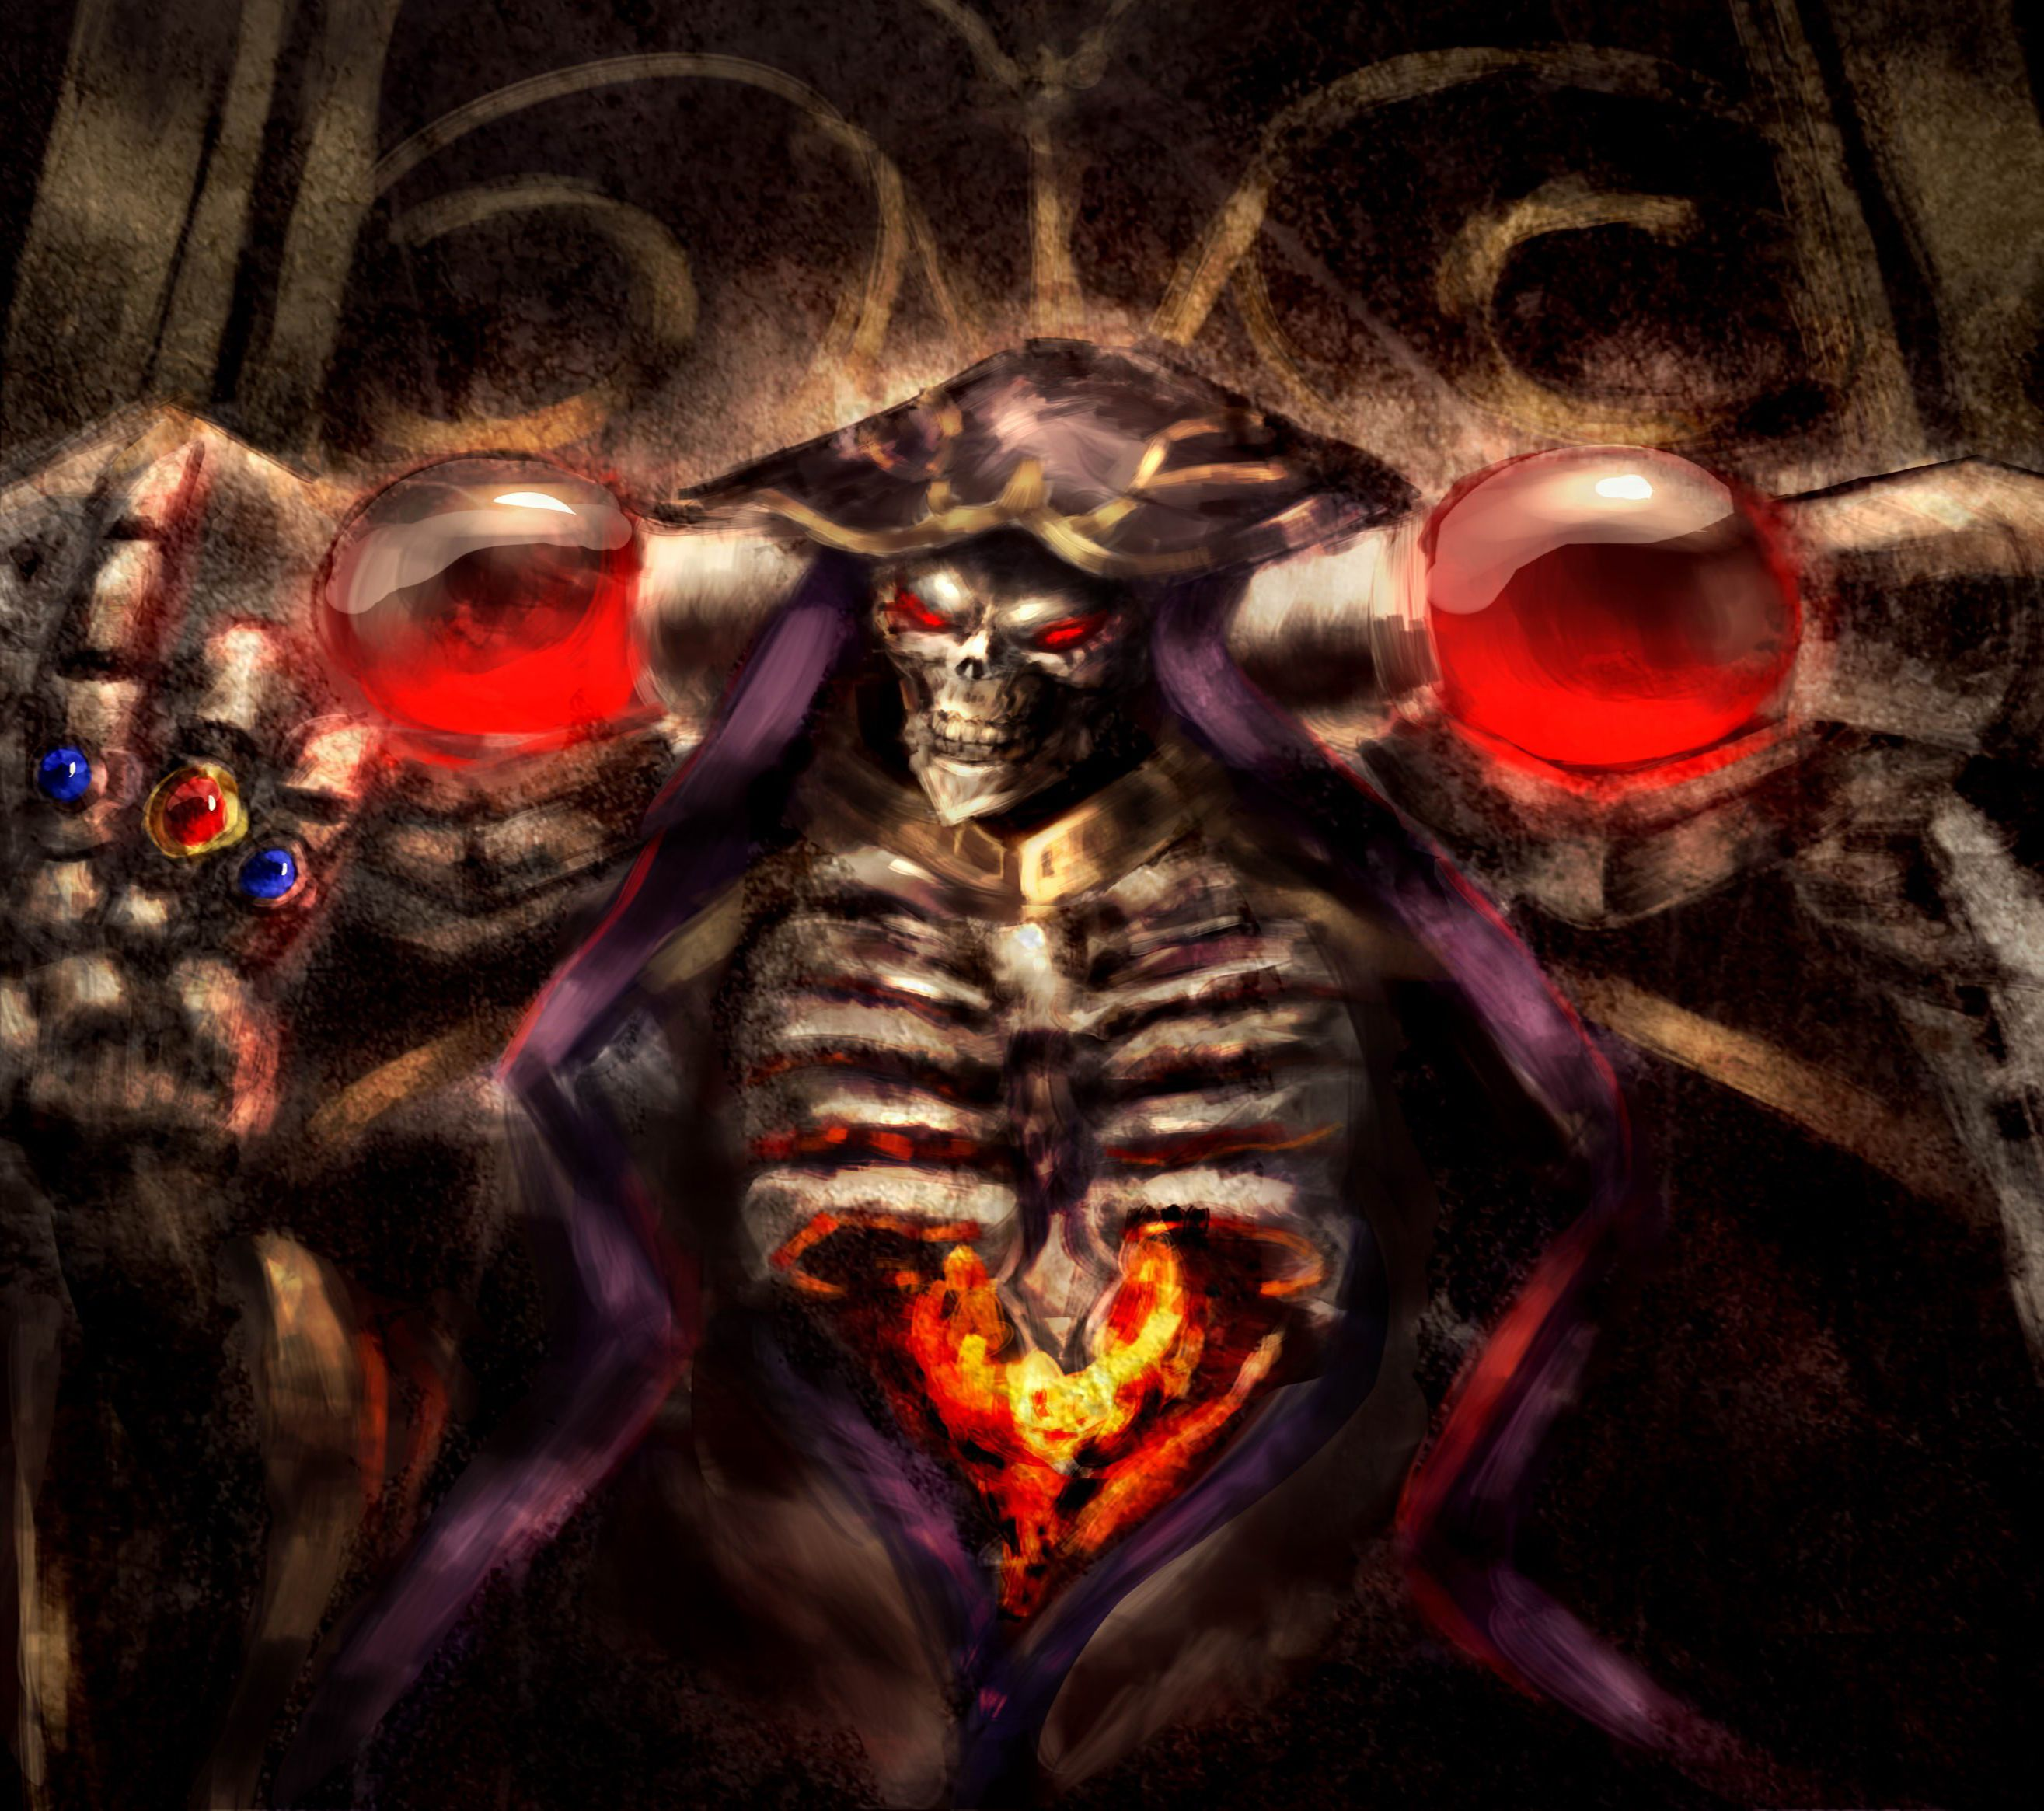 Ainz Ooal Gown Computer Wallpapers Desktop Backgrounds 2630x2330 Id 655498 Anime Wallpaper Anime Anime Movies